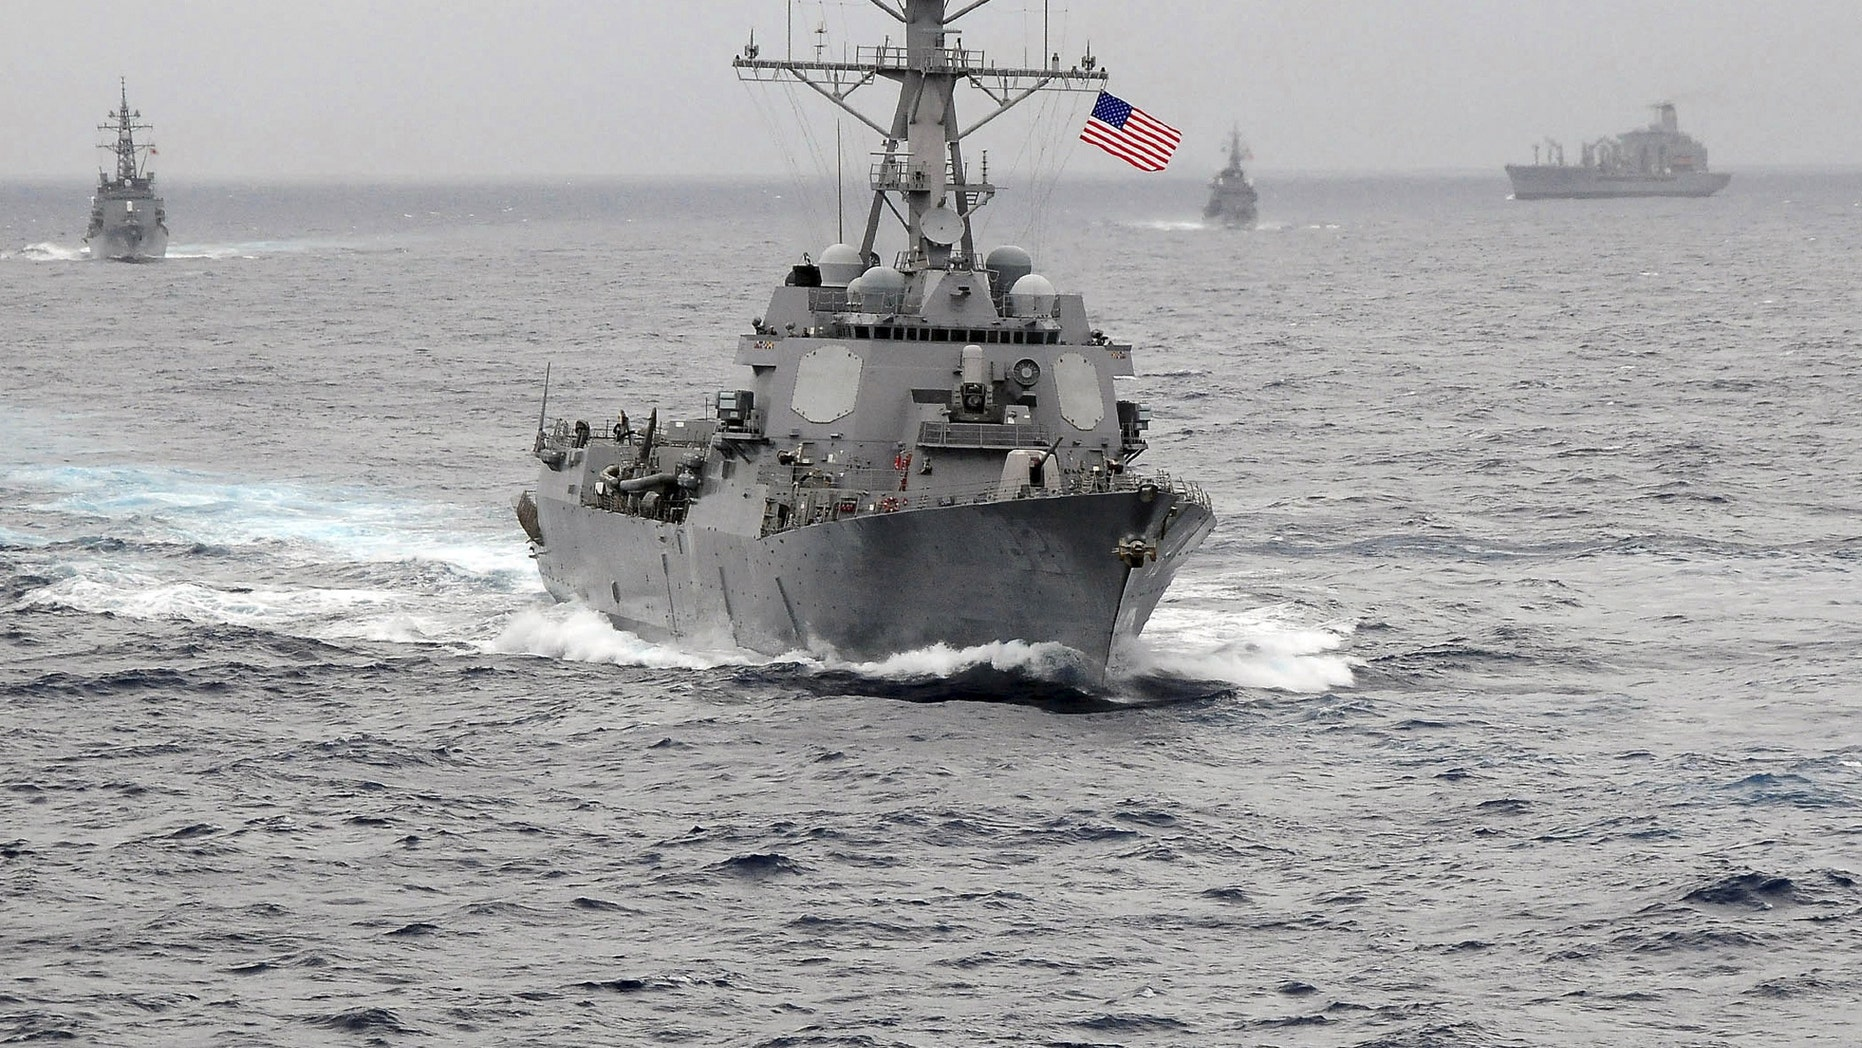 File photo - The US Navy guided-missile destroyer USS Lassen. (US Navy/CPO John Hageman/Handout via Reuters/File Photo)